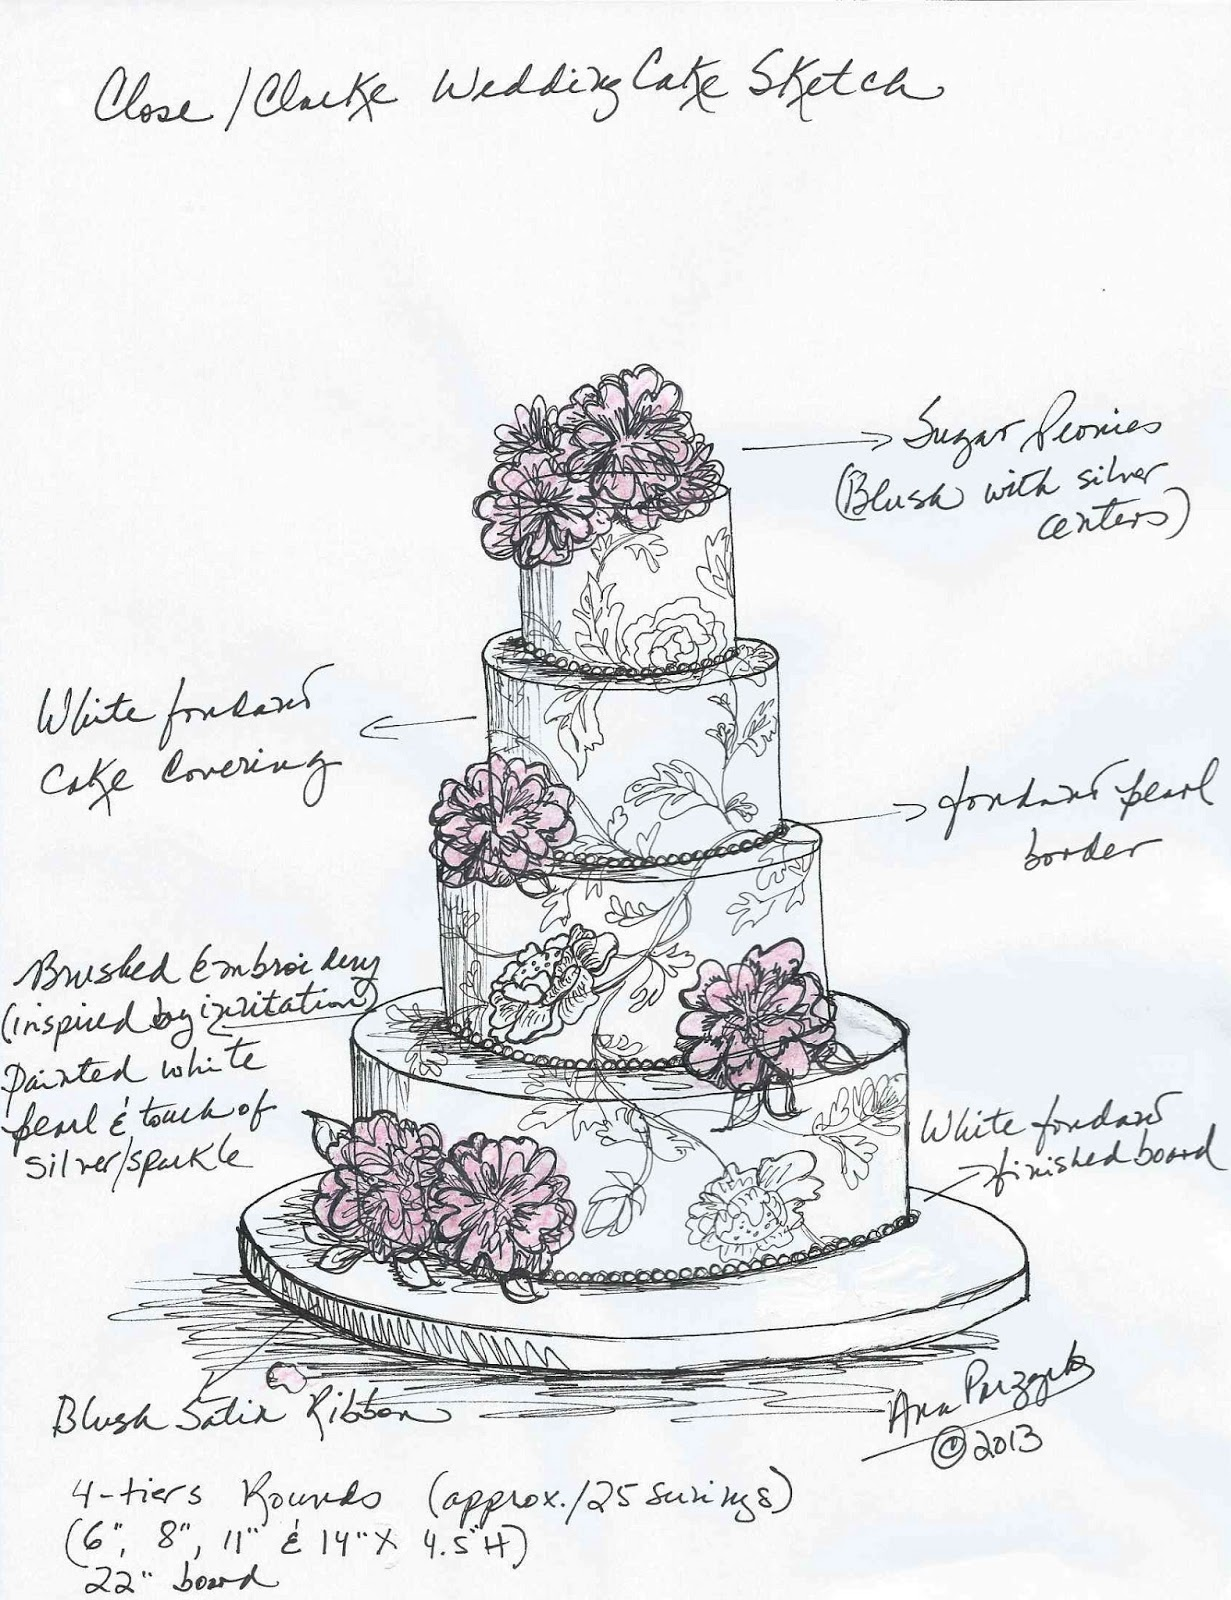 For the Love of Cake! by Garry & Ana Parzych: June 2013